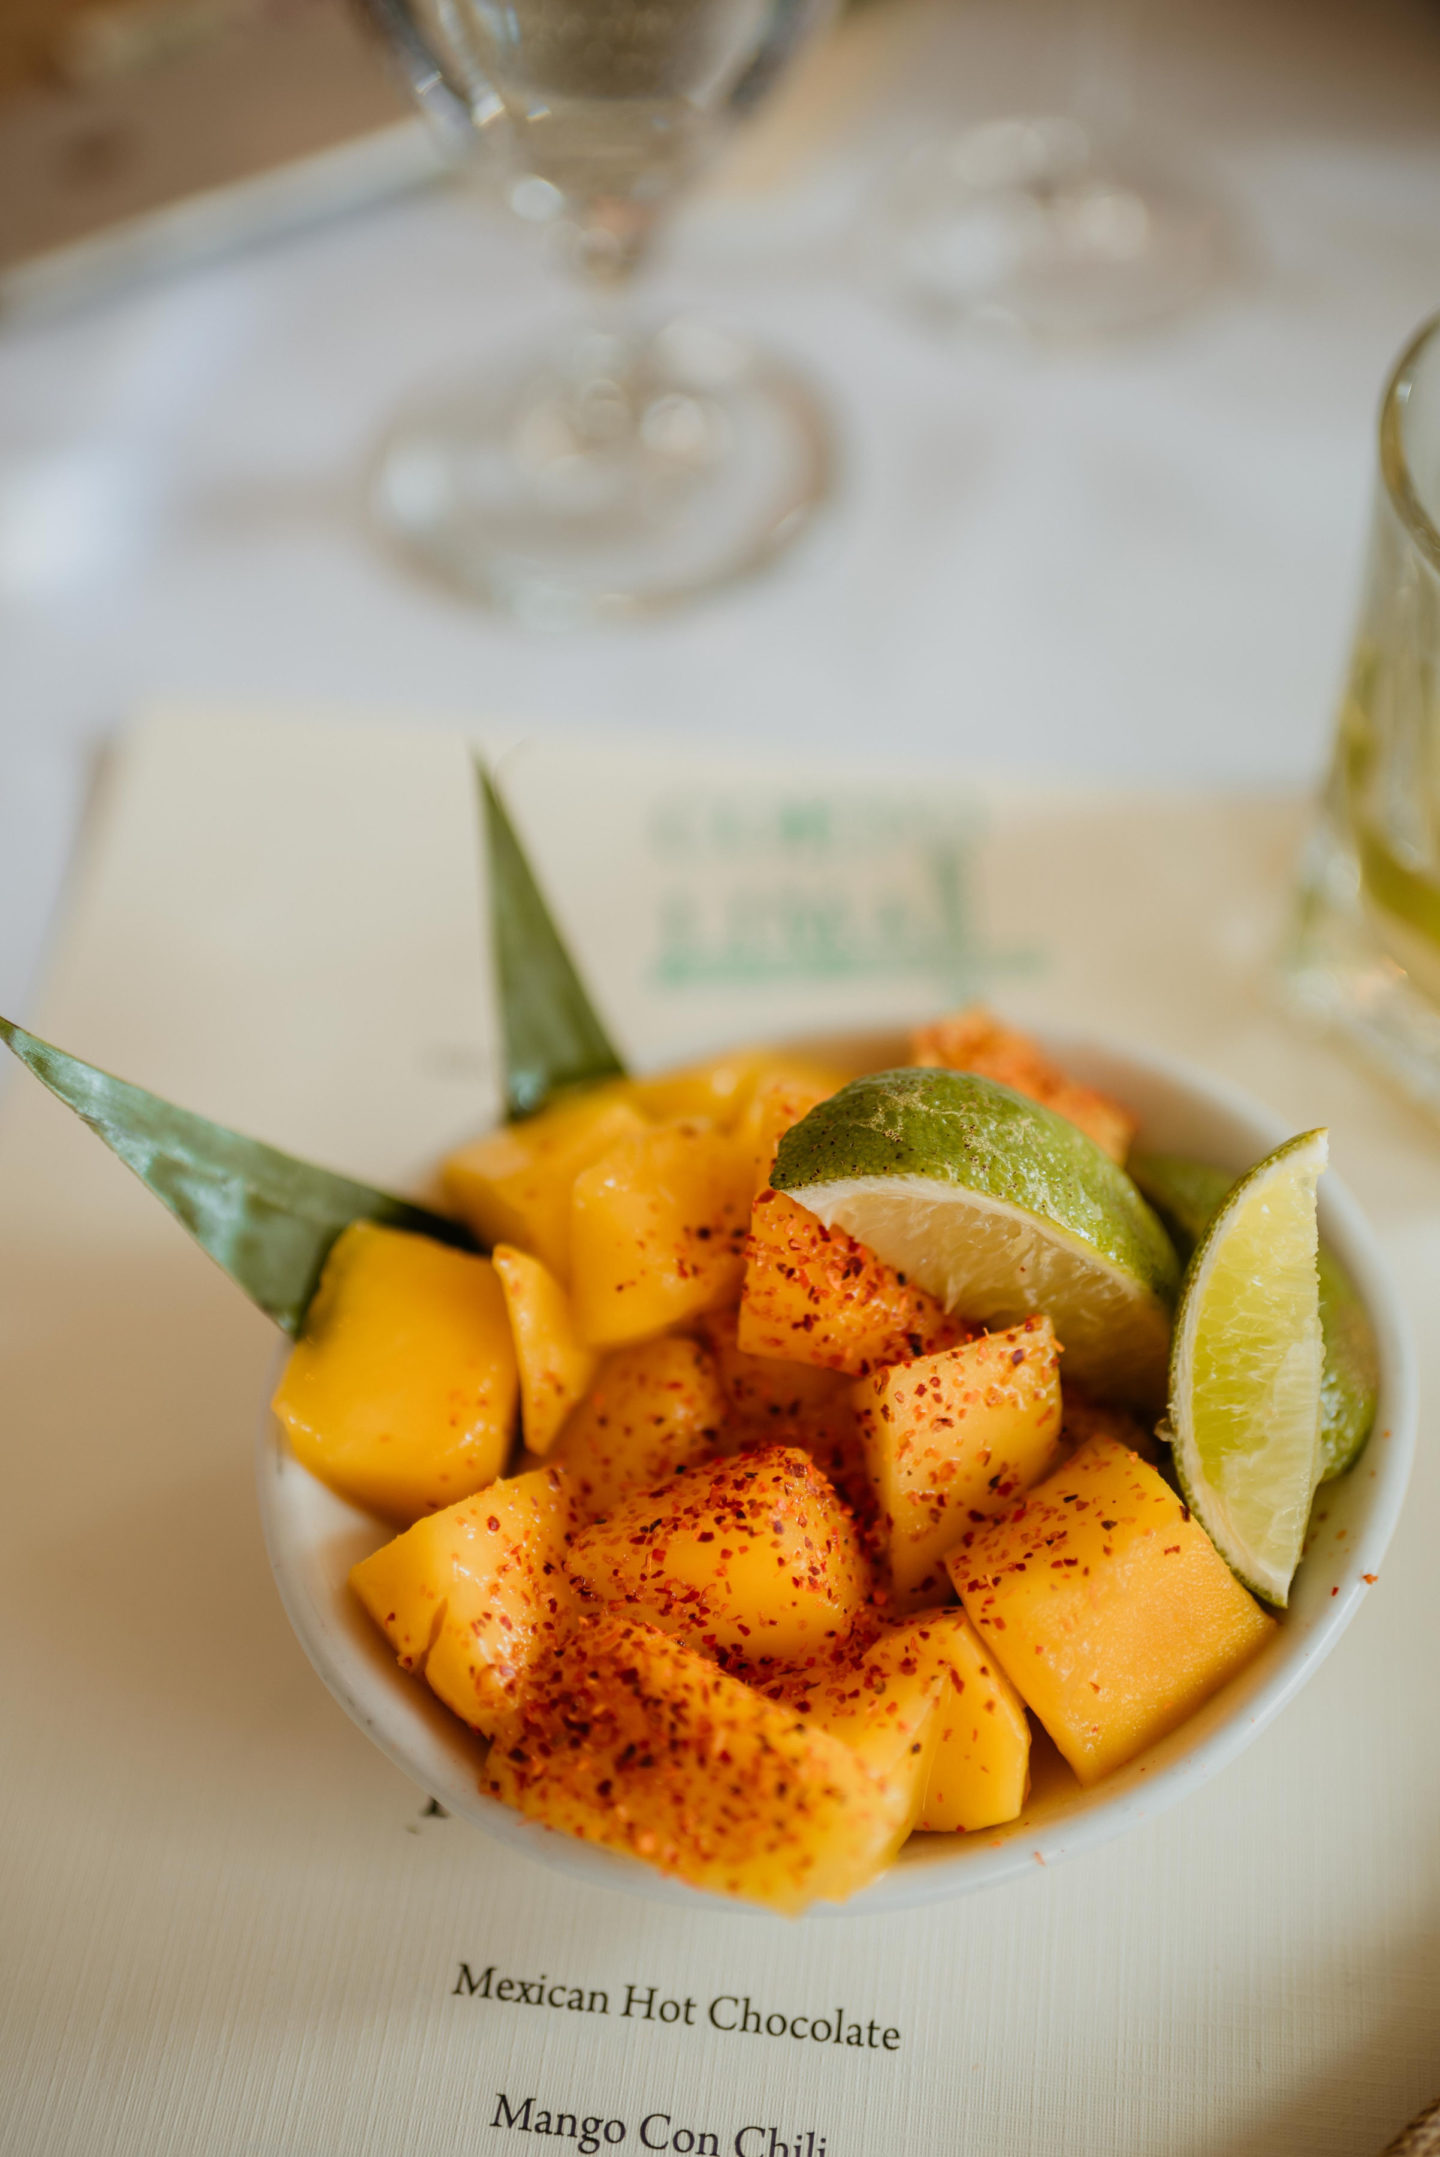 A bowl of Mango Con Chili with Lime from Corto Lima in Lexington, Kentucky